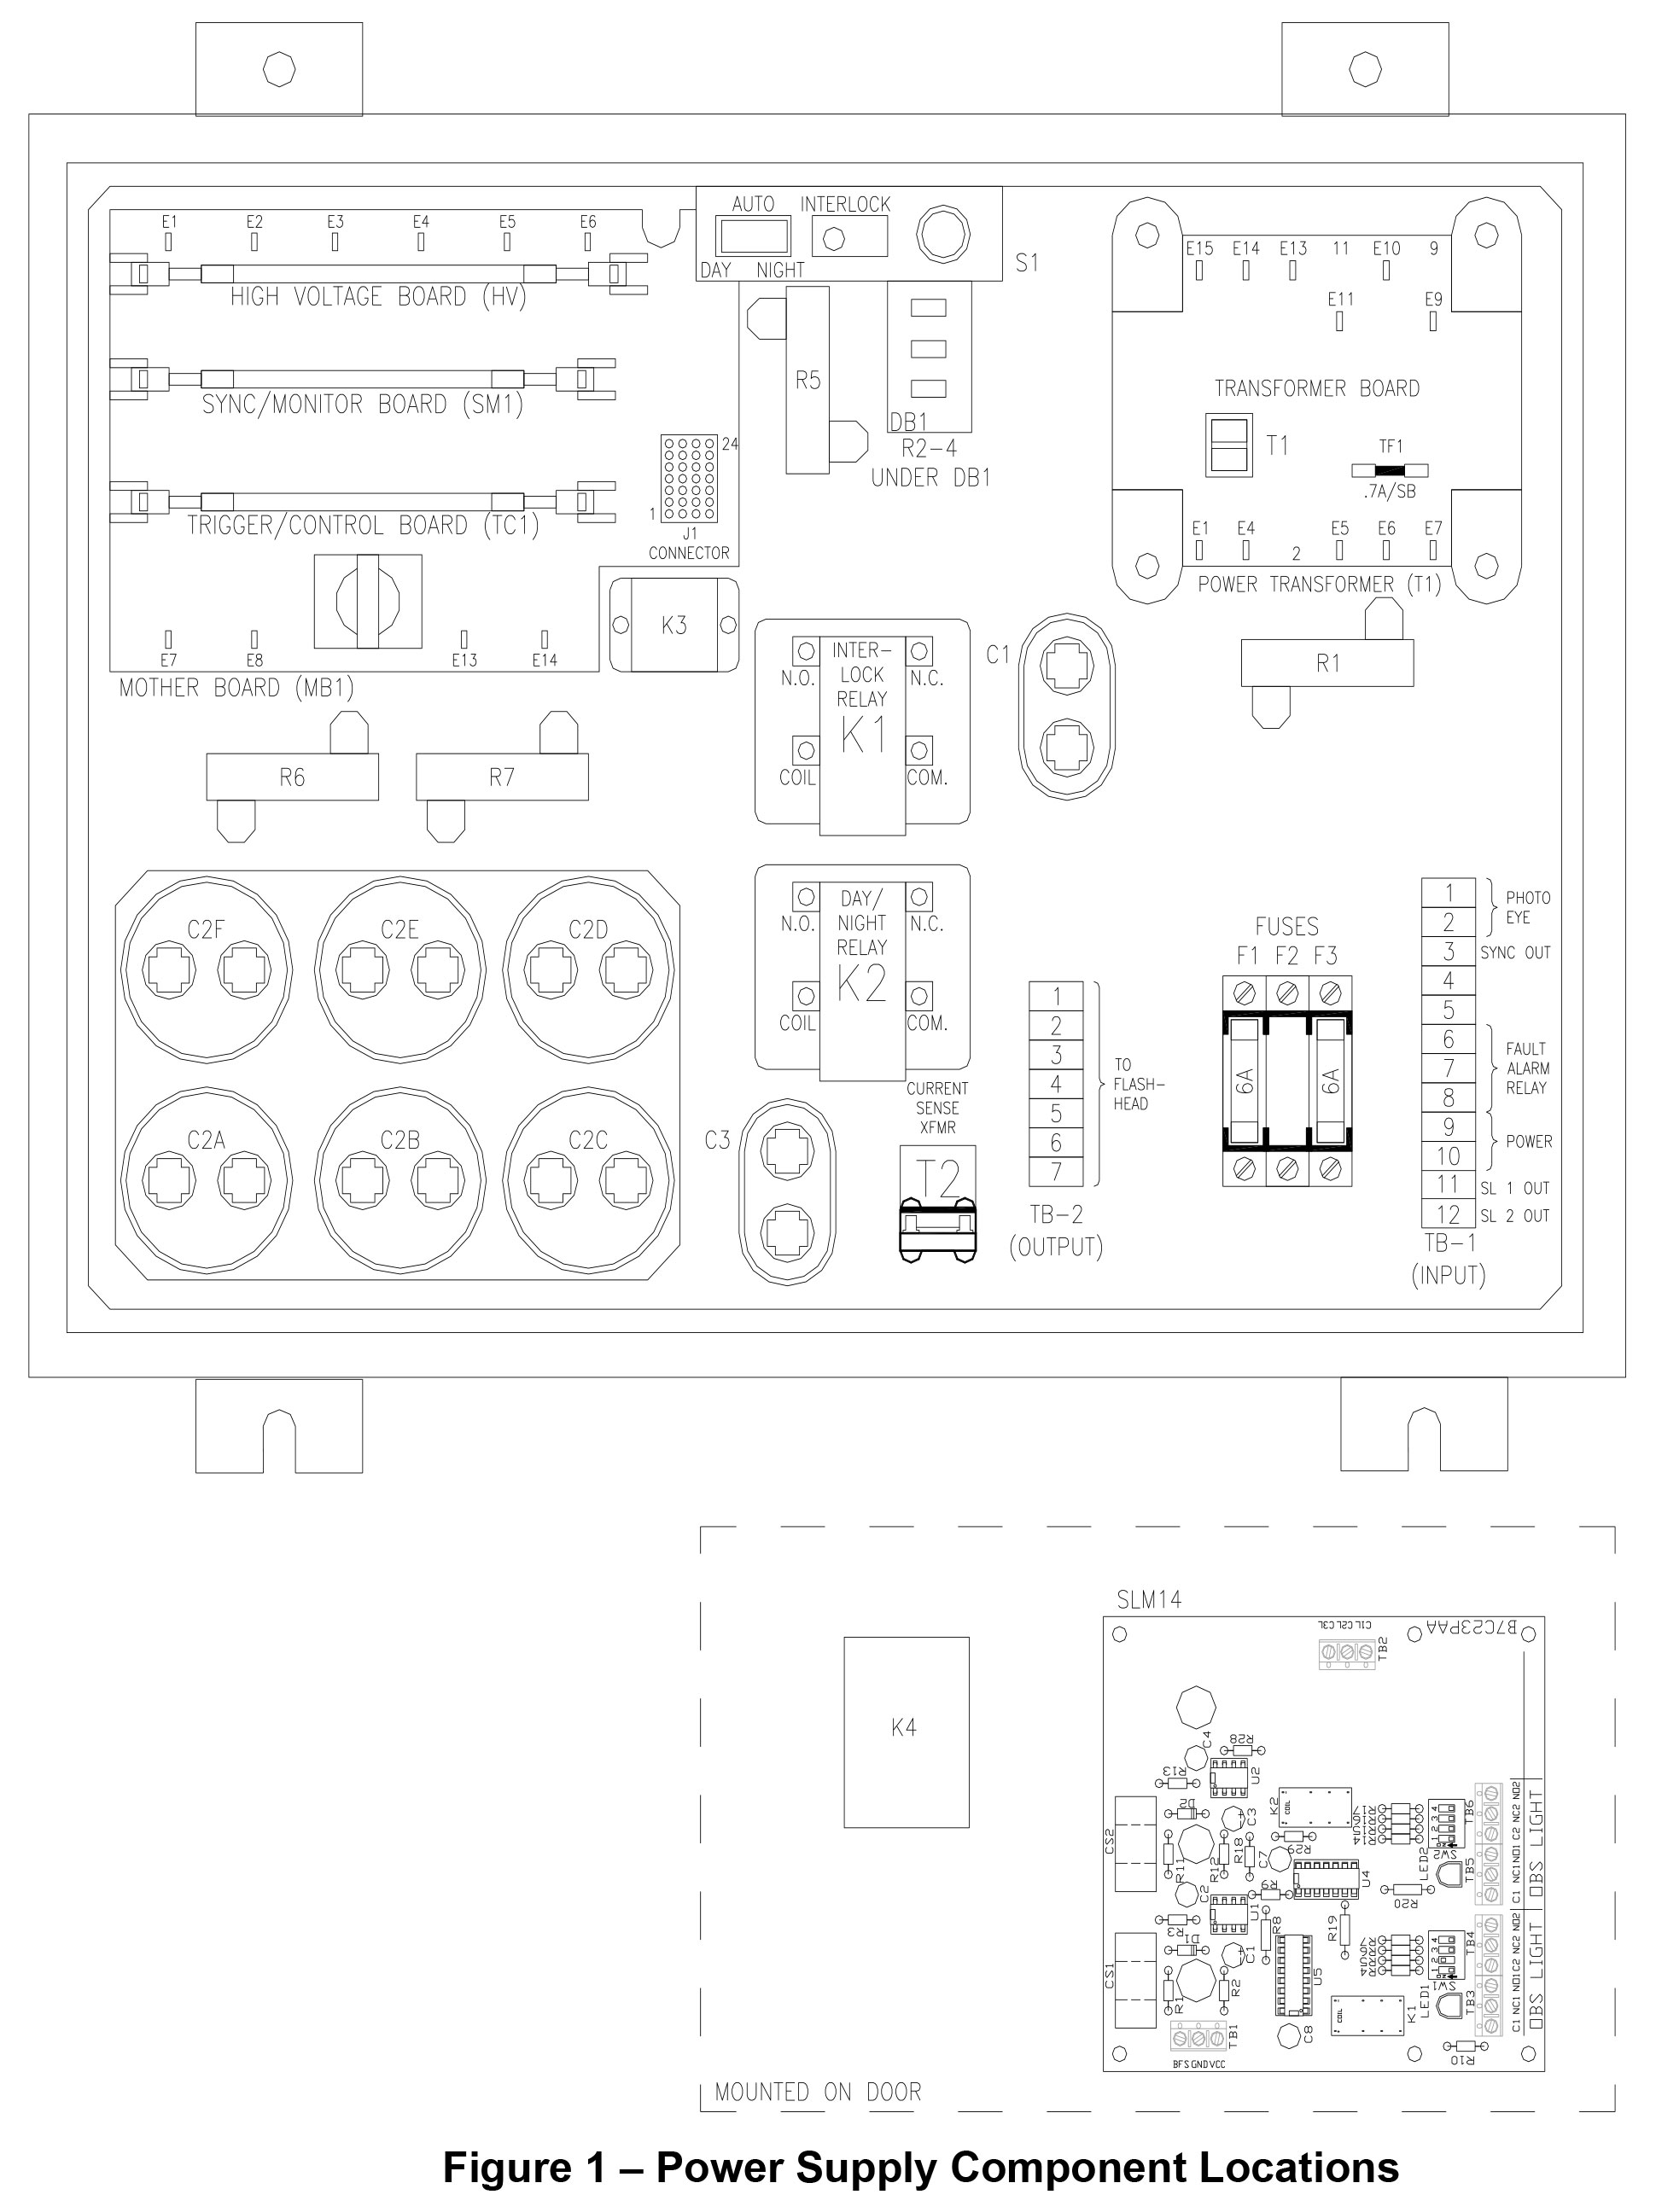 wiring diagram dali lighting with Feedback Control Systems Phillips Solution Manual Pdf Wiring Diagrams on 0 10 Volt Dimming Wiring Diagrams additionally Lutron Dimmer Switch Wiring Diagram further Dc Thermostat Schematic besides Emergency Ballast Wiring Diagram Ge likewise Led Driver Wiring Diagram.